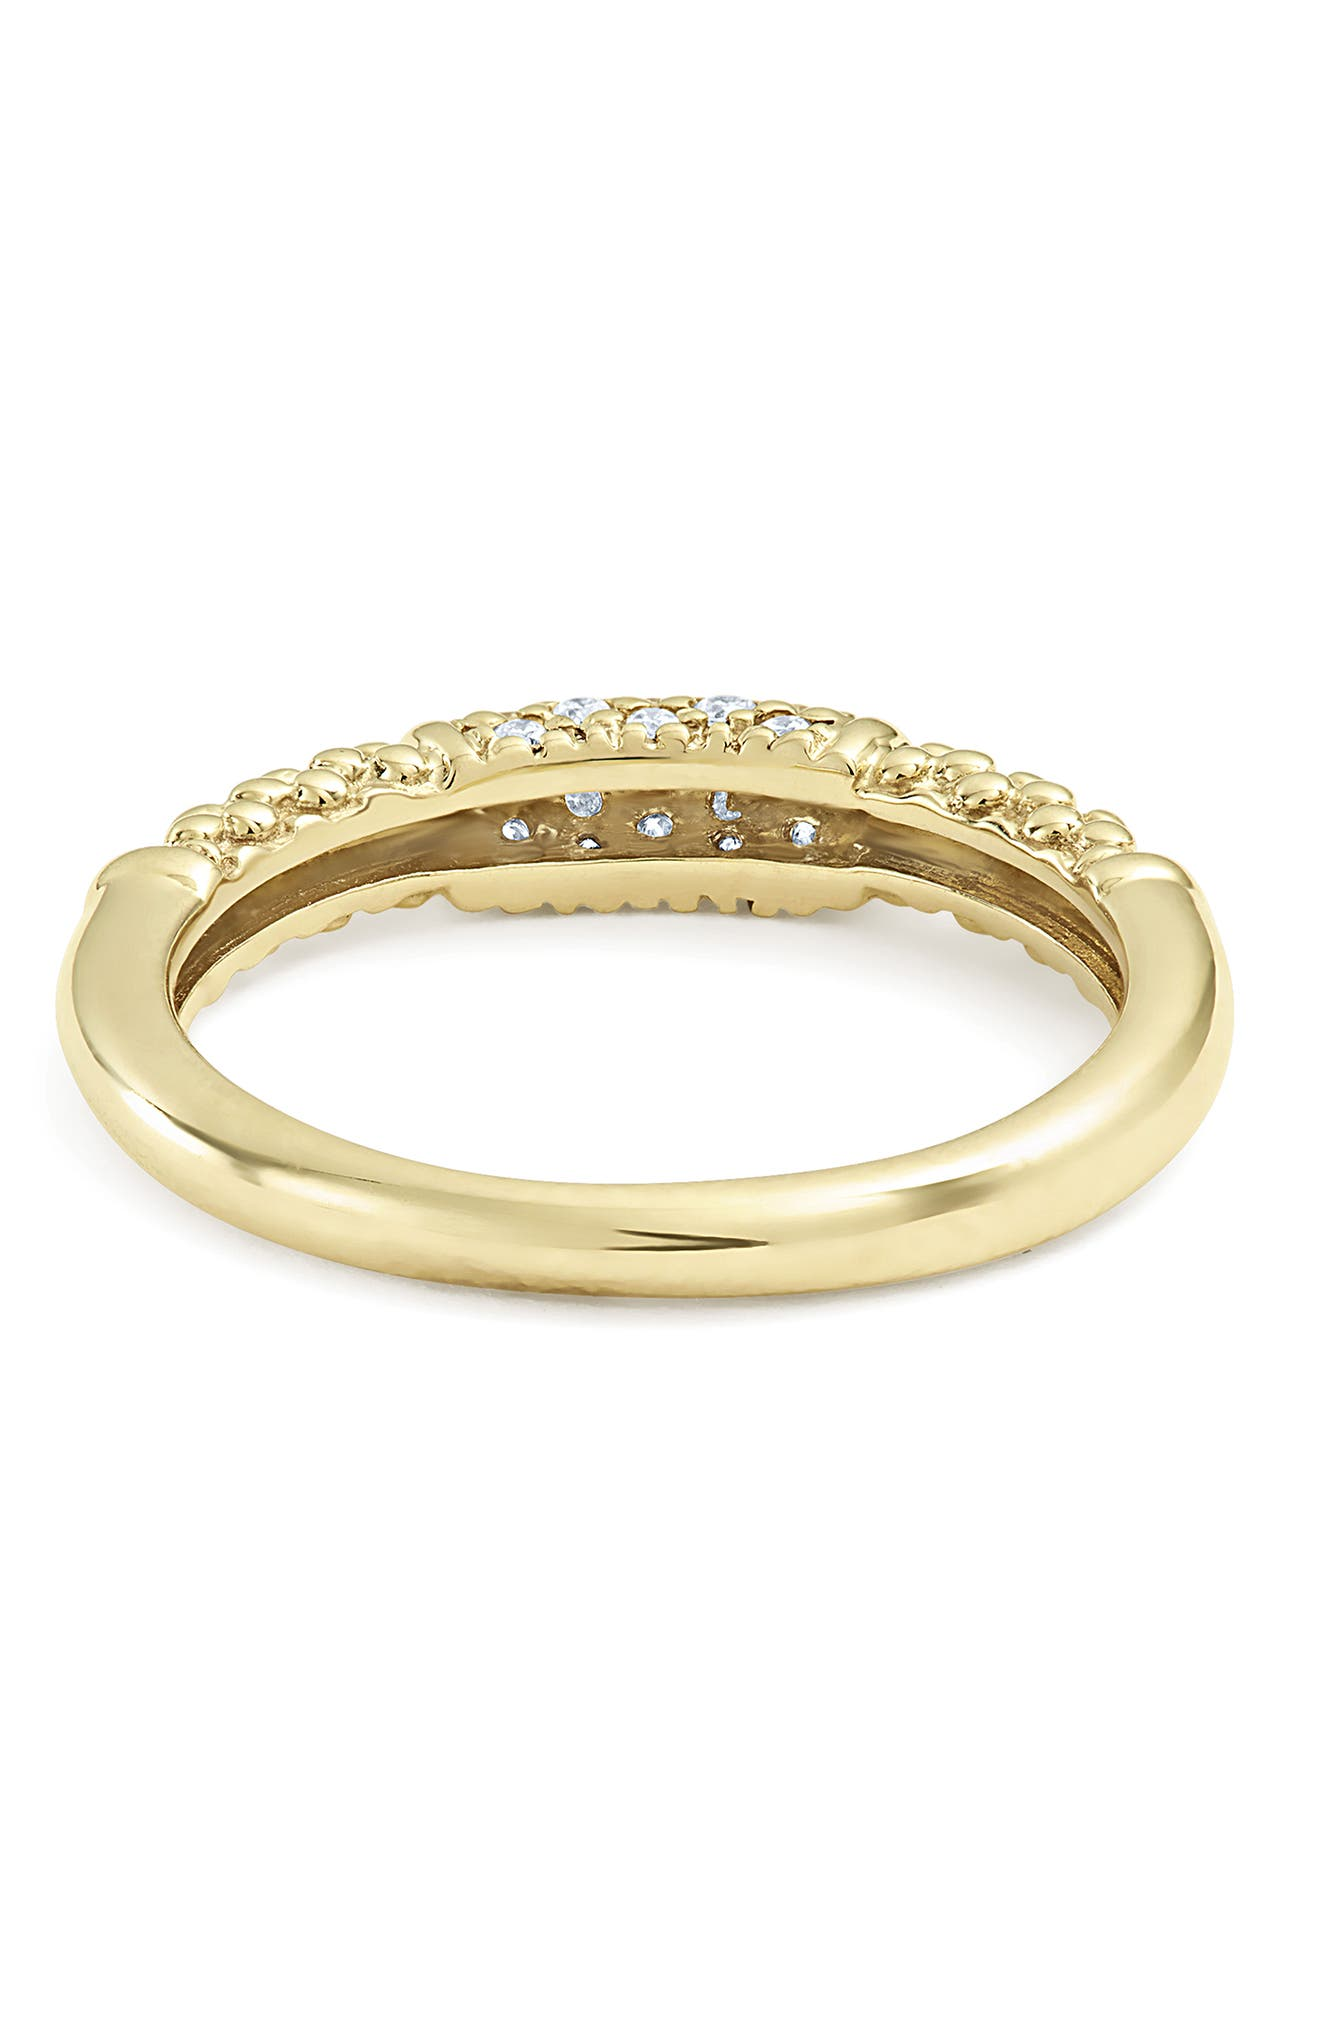 Caviar Diamond Ring,                             Alternate thumbnail 4, color,                             GOLD